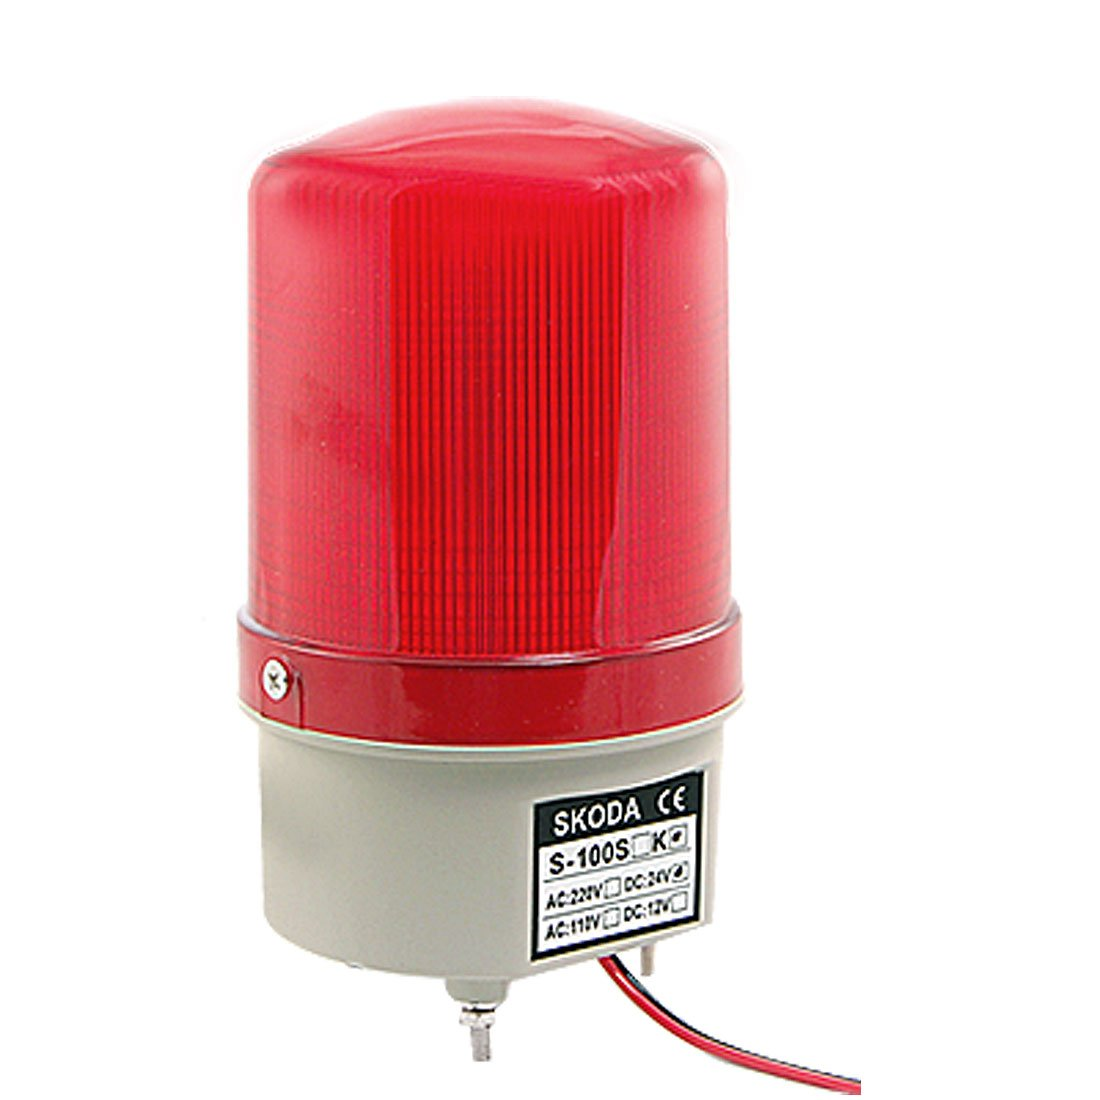 uxcell DC24V Flash LED Industry Signal Tower Buzzer Siren Warn Bulb Red Light